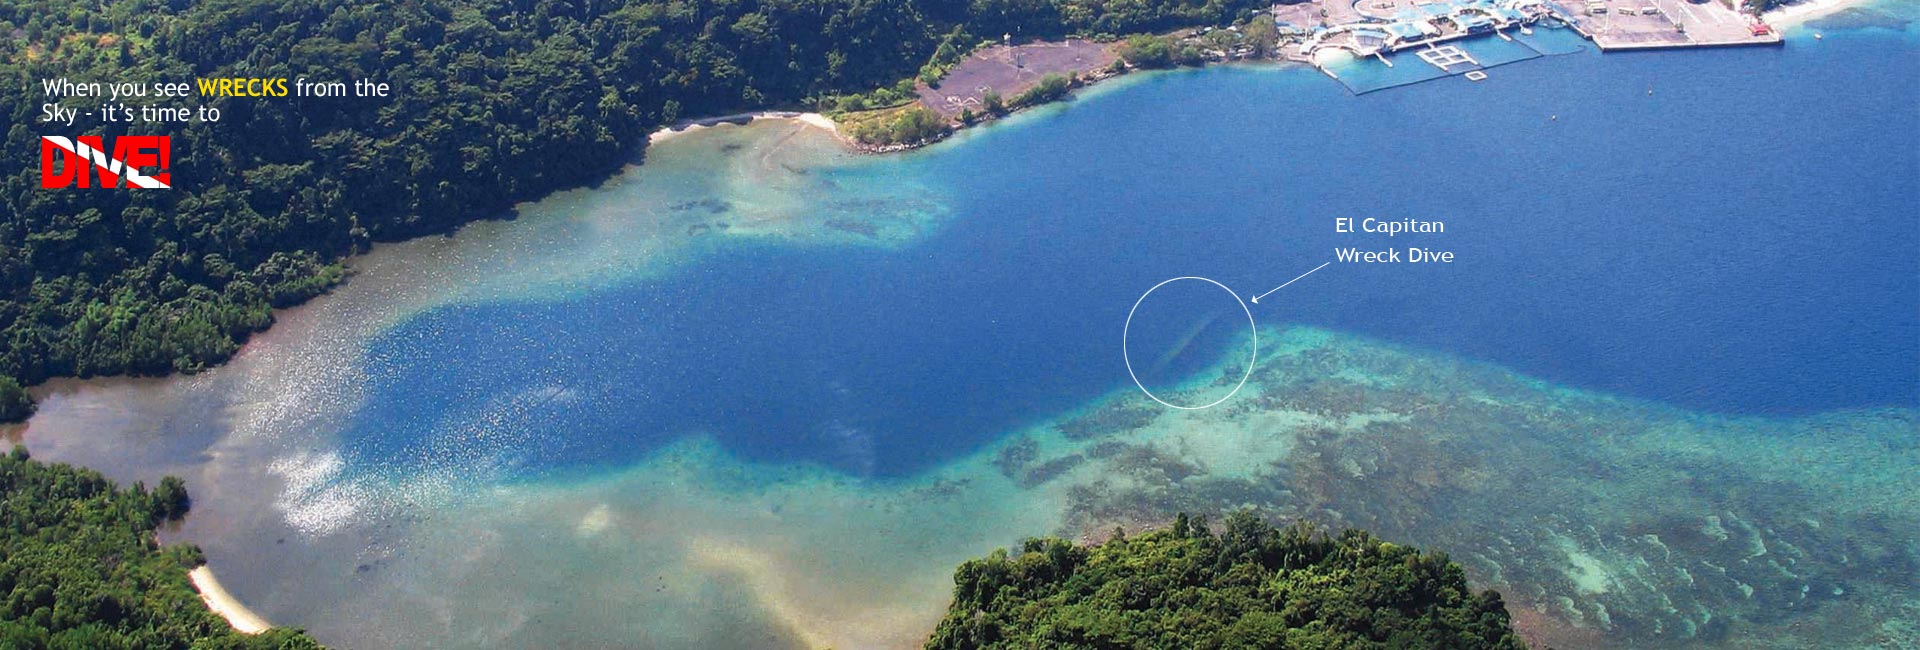 subic bay aerial view wreck dive